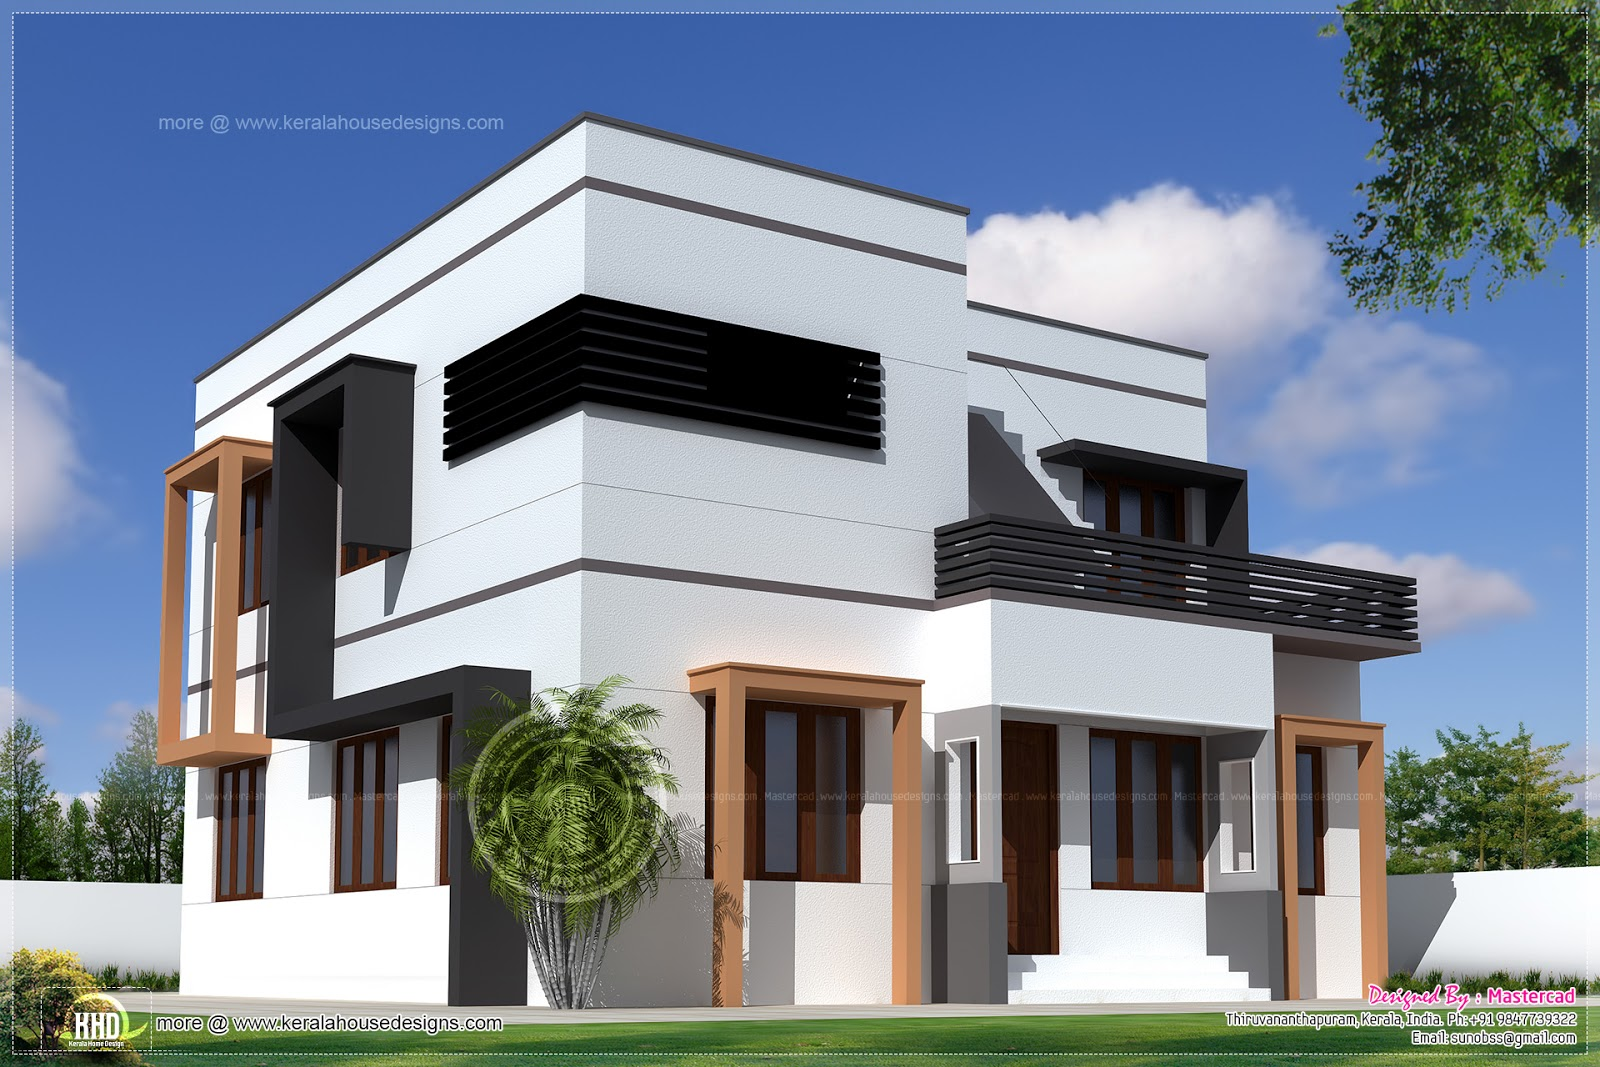 House Design Exterior 25 Best Square House Designs House Plans 53530